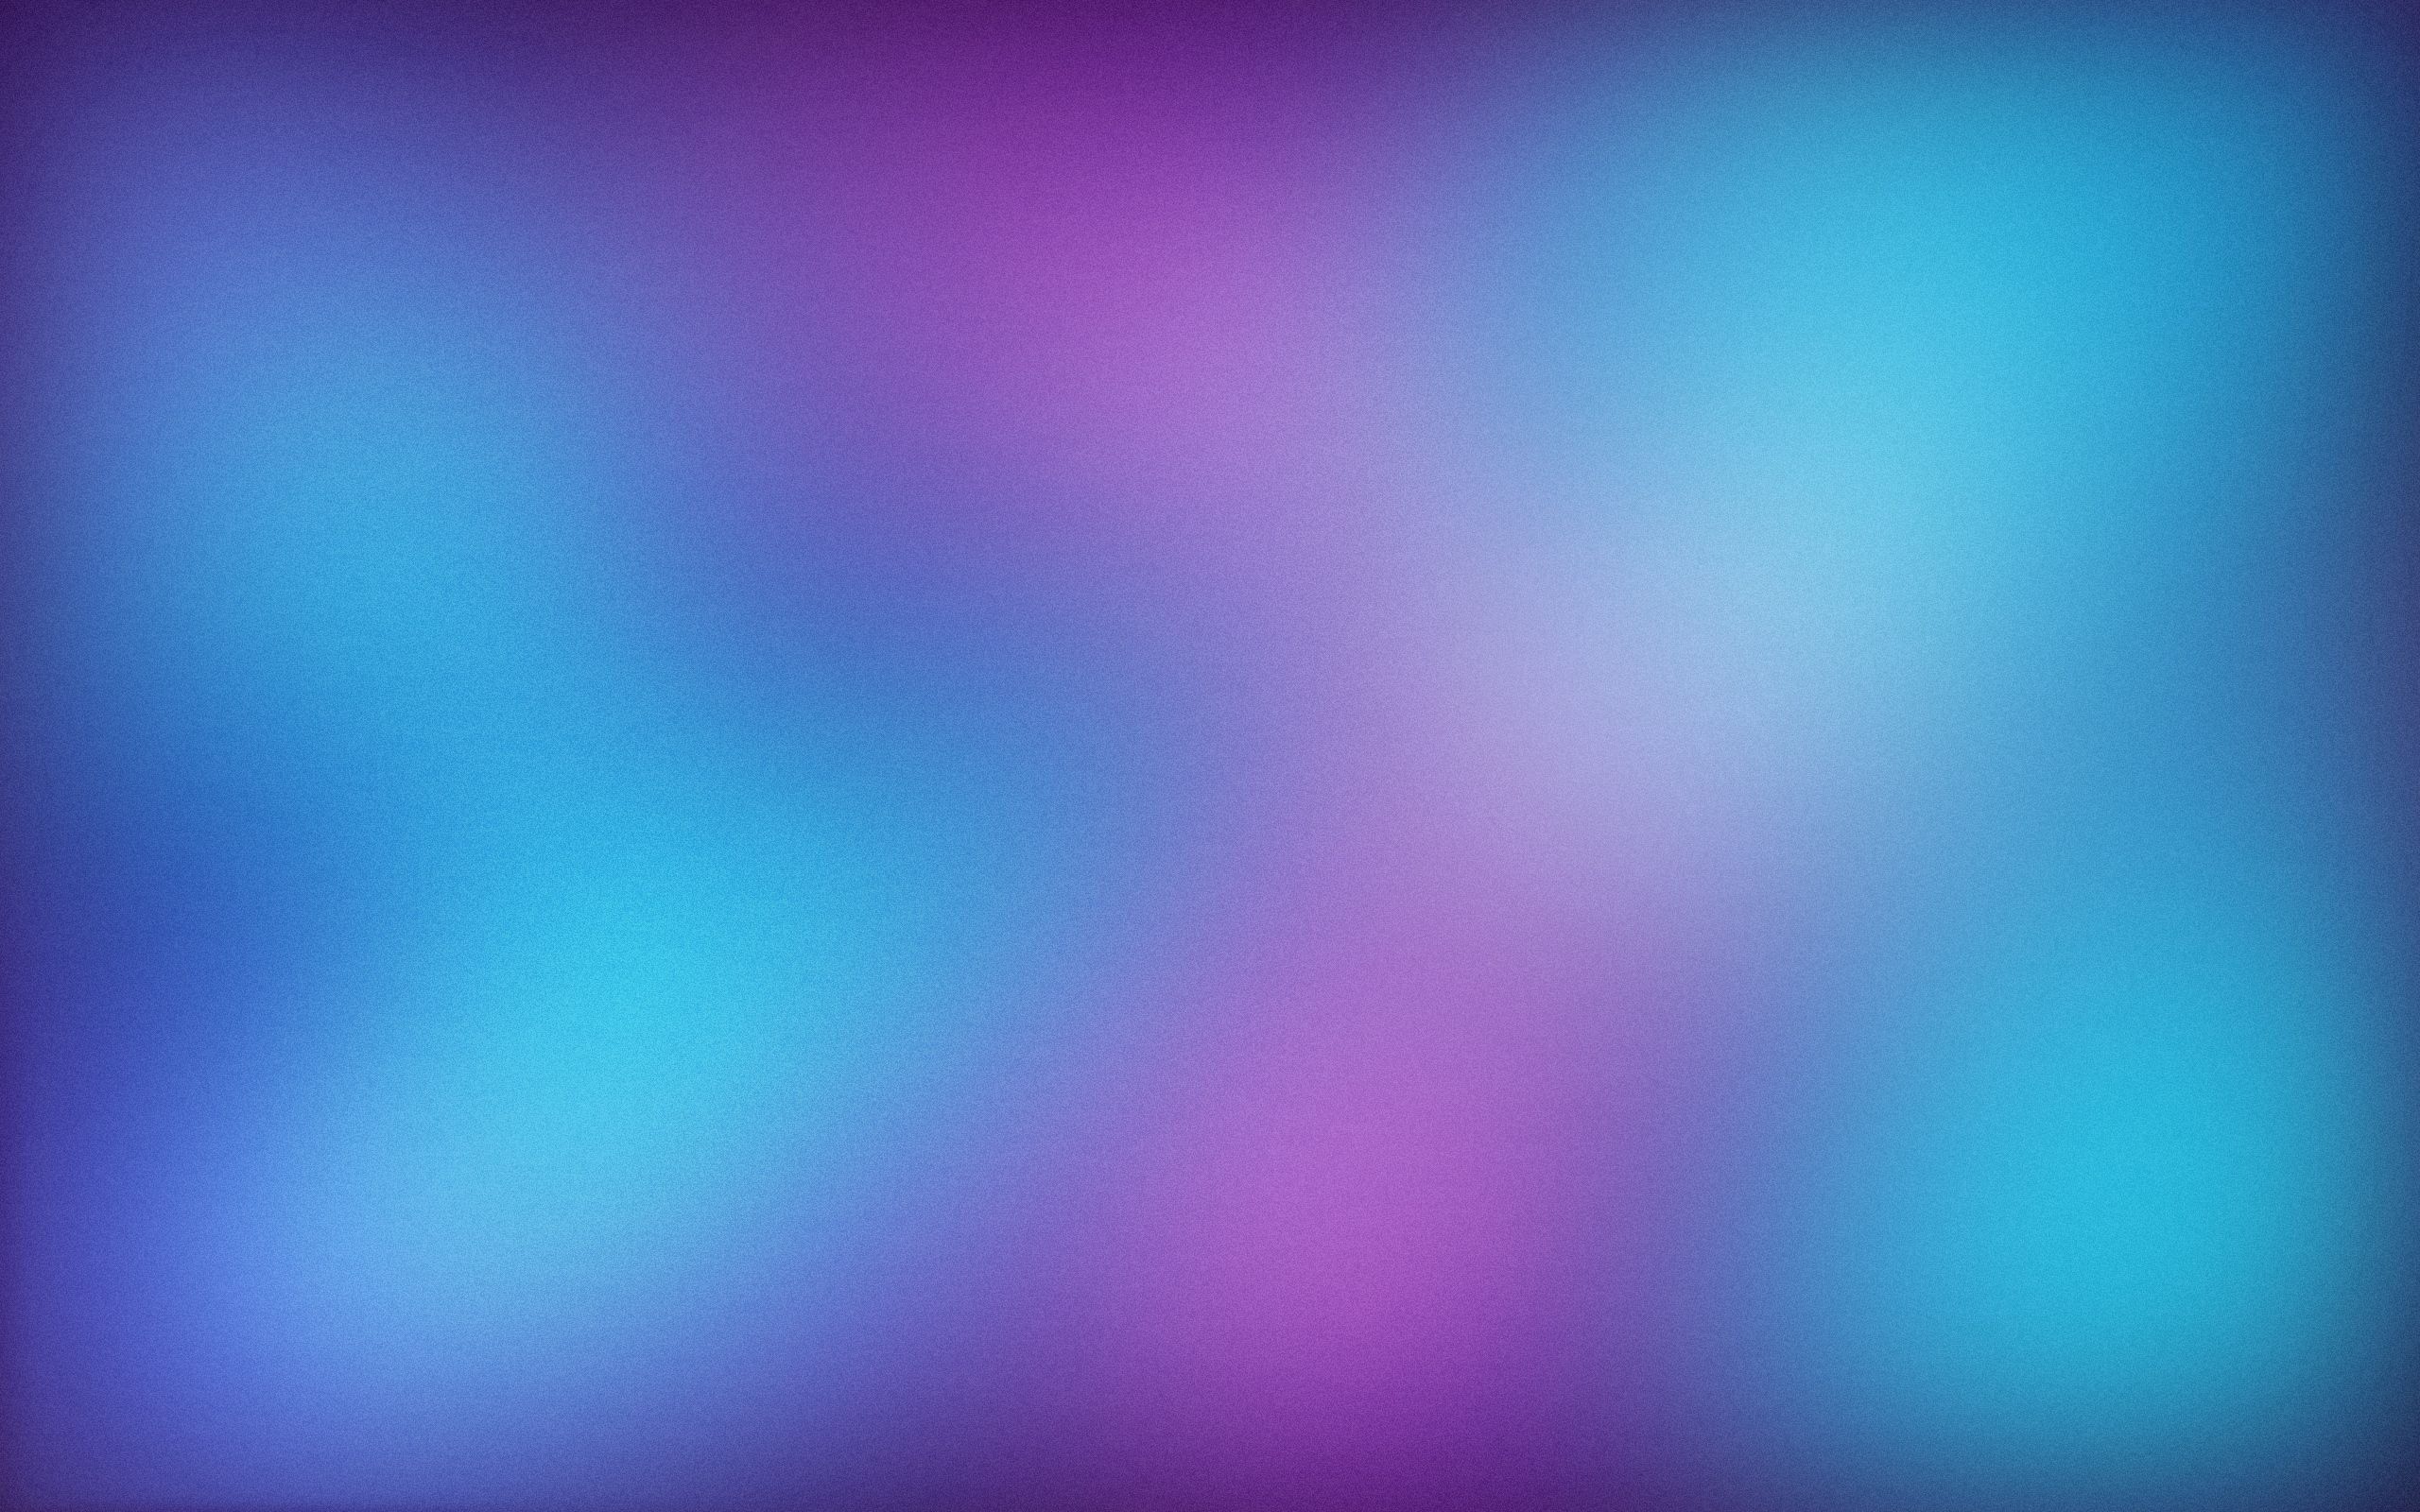 67880 download wallpaper Abstract, Background, Stains, Spots, Bright, Solid screensavers and pictures for free